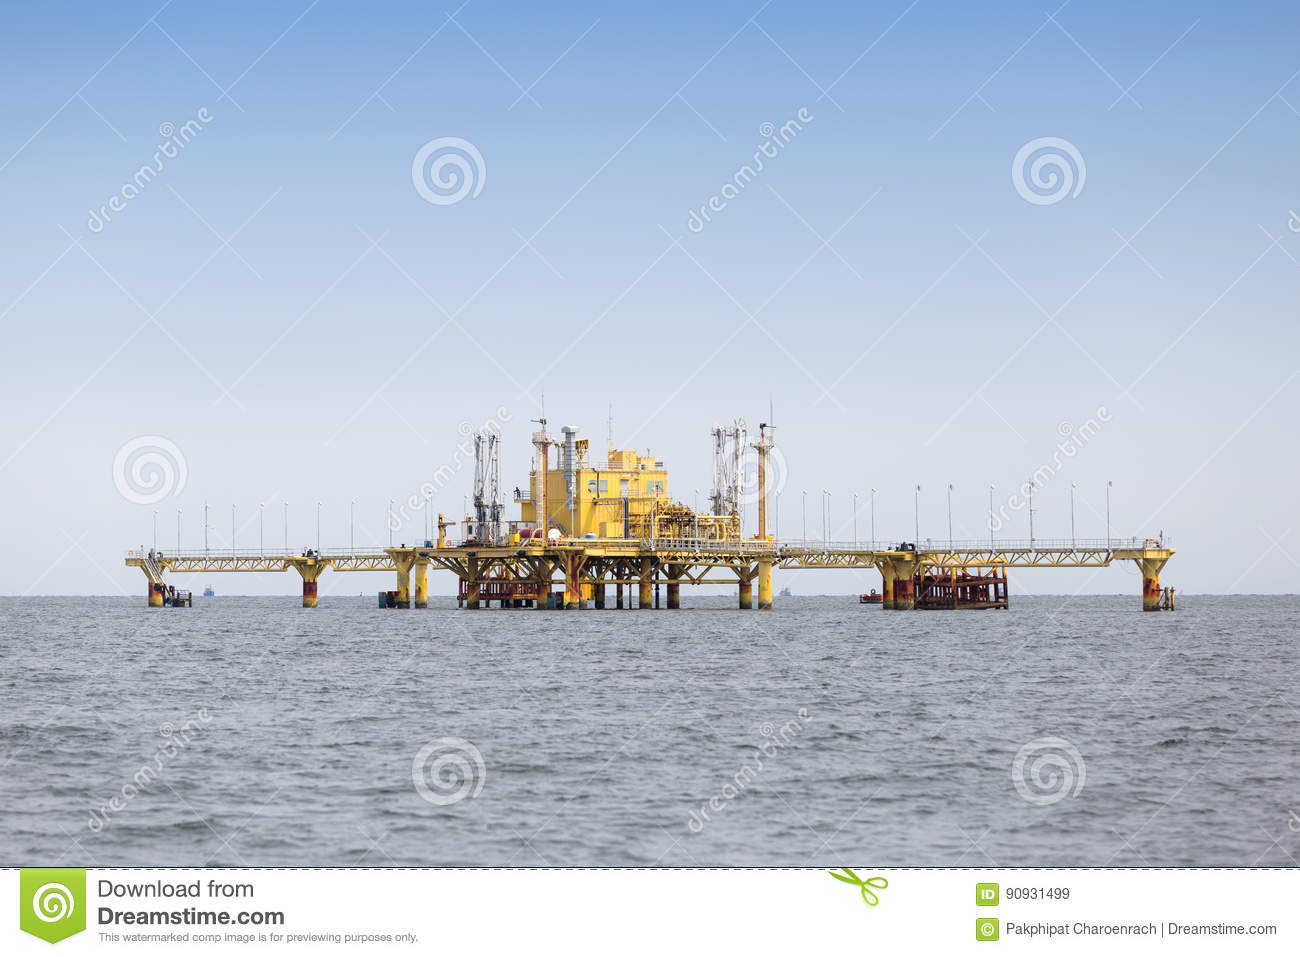 Offshore Production Platform In the Middle of Ocean.